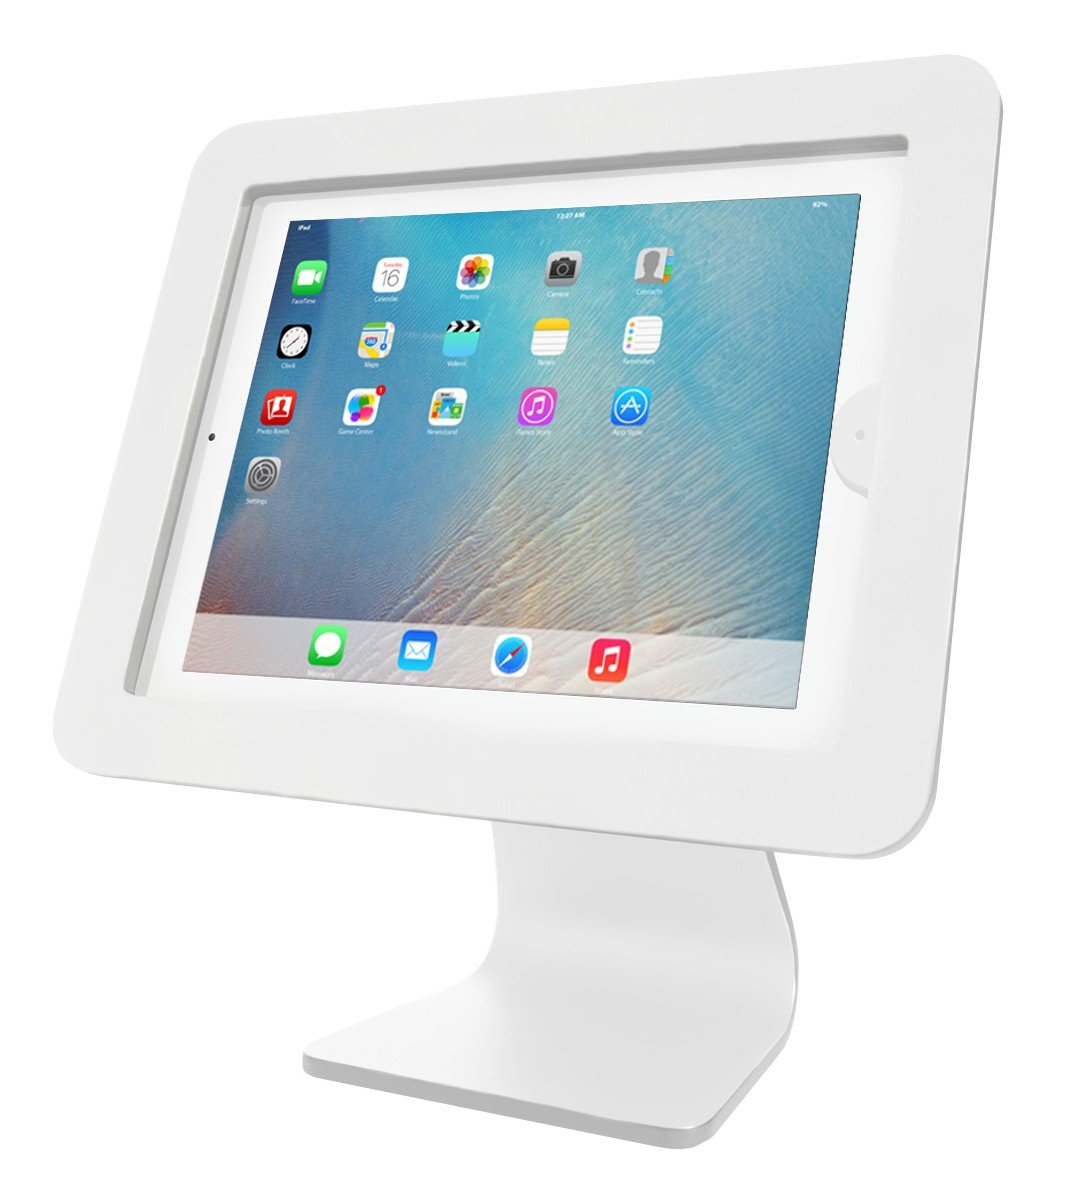 Maclocks AIO-W All-in-One 360 Rotating iPad Security Enclosure Kiosk Stand (White)